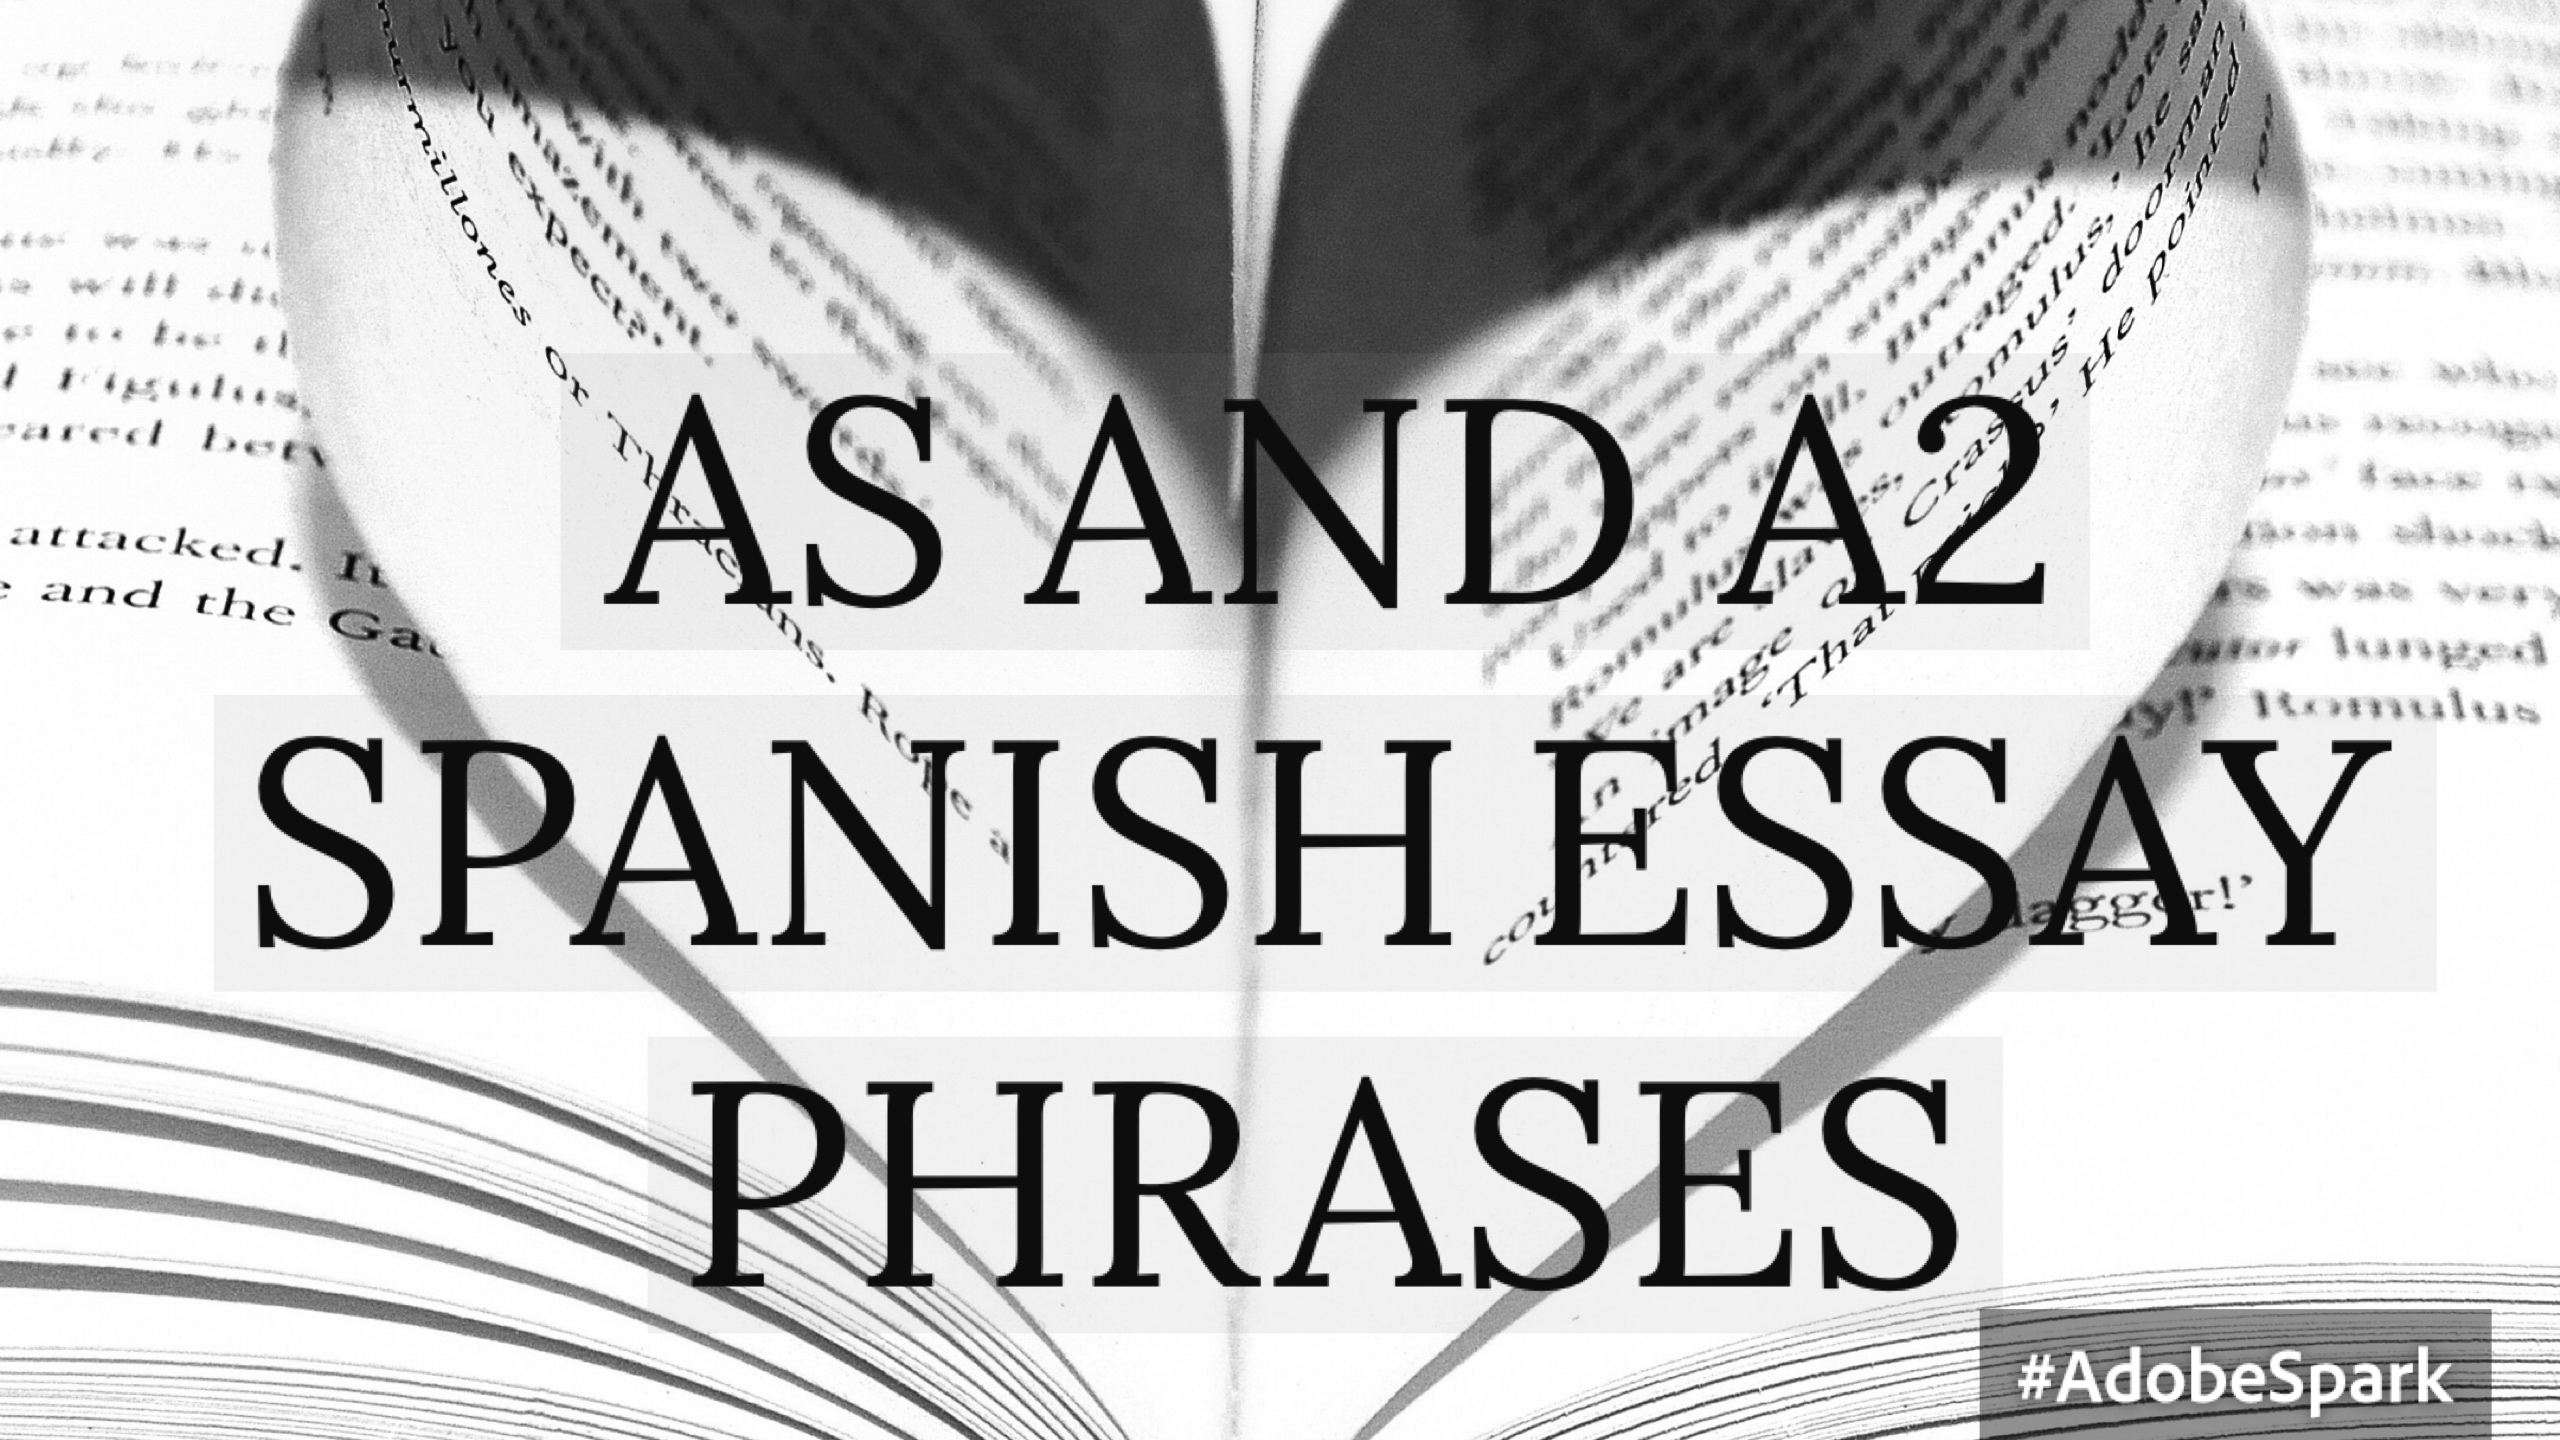 college essays in spanish Is thinking of good college essay ideas hard here's a guide on how to brainstorm great college essay topics for your application.